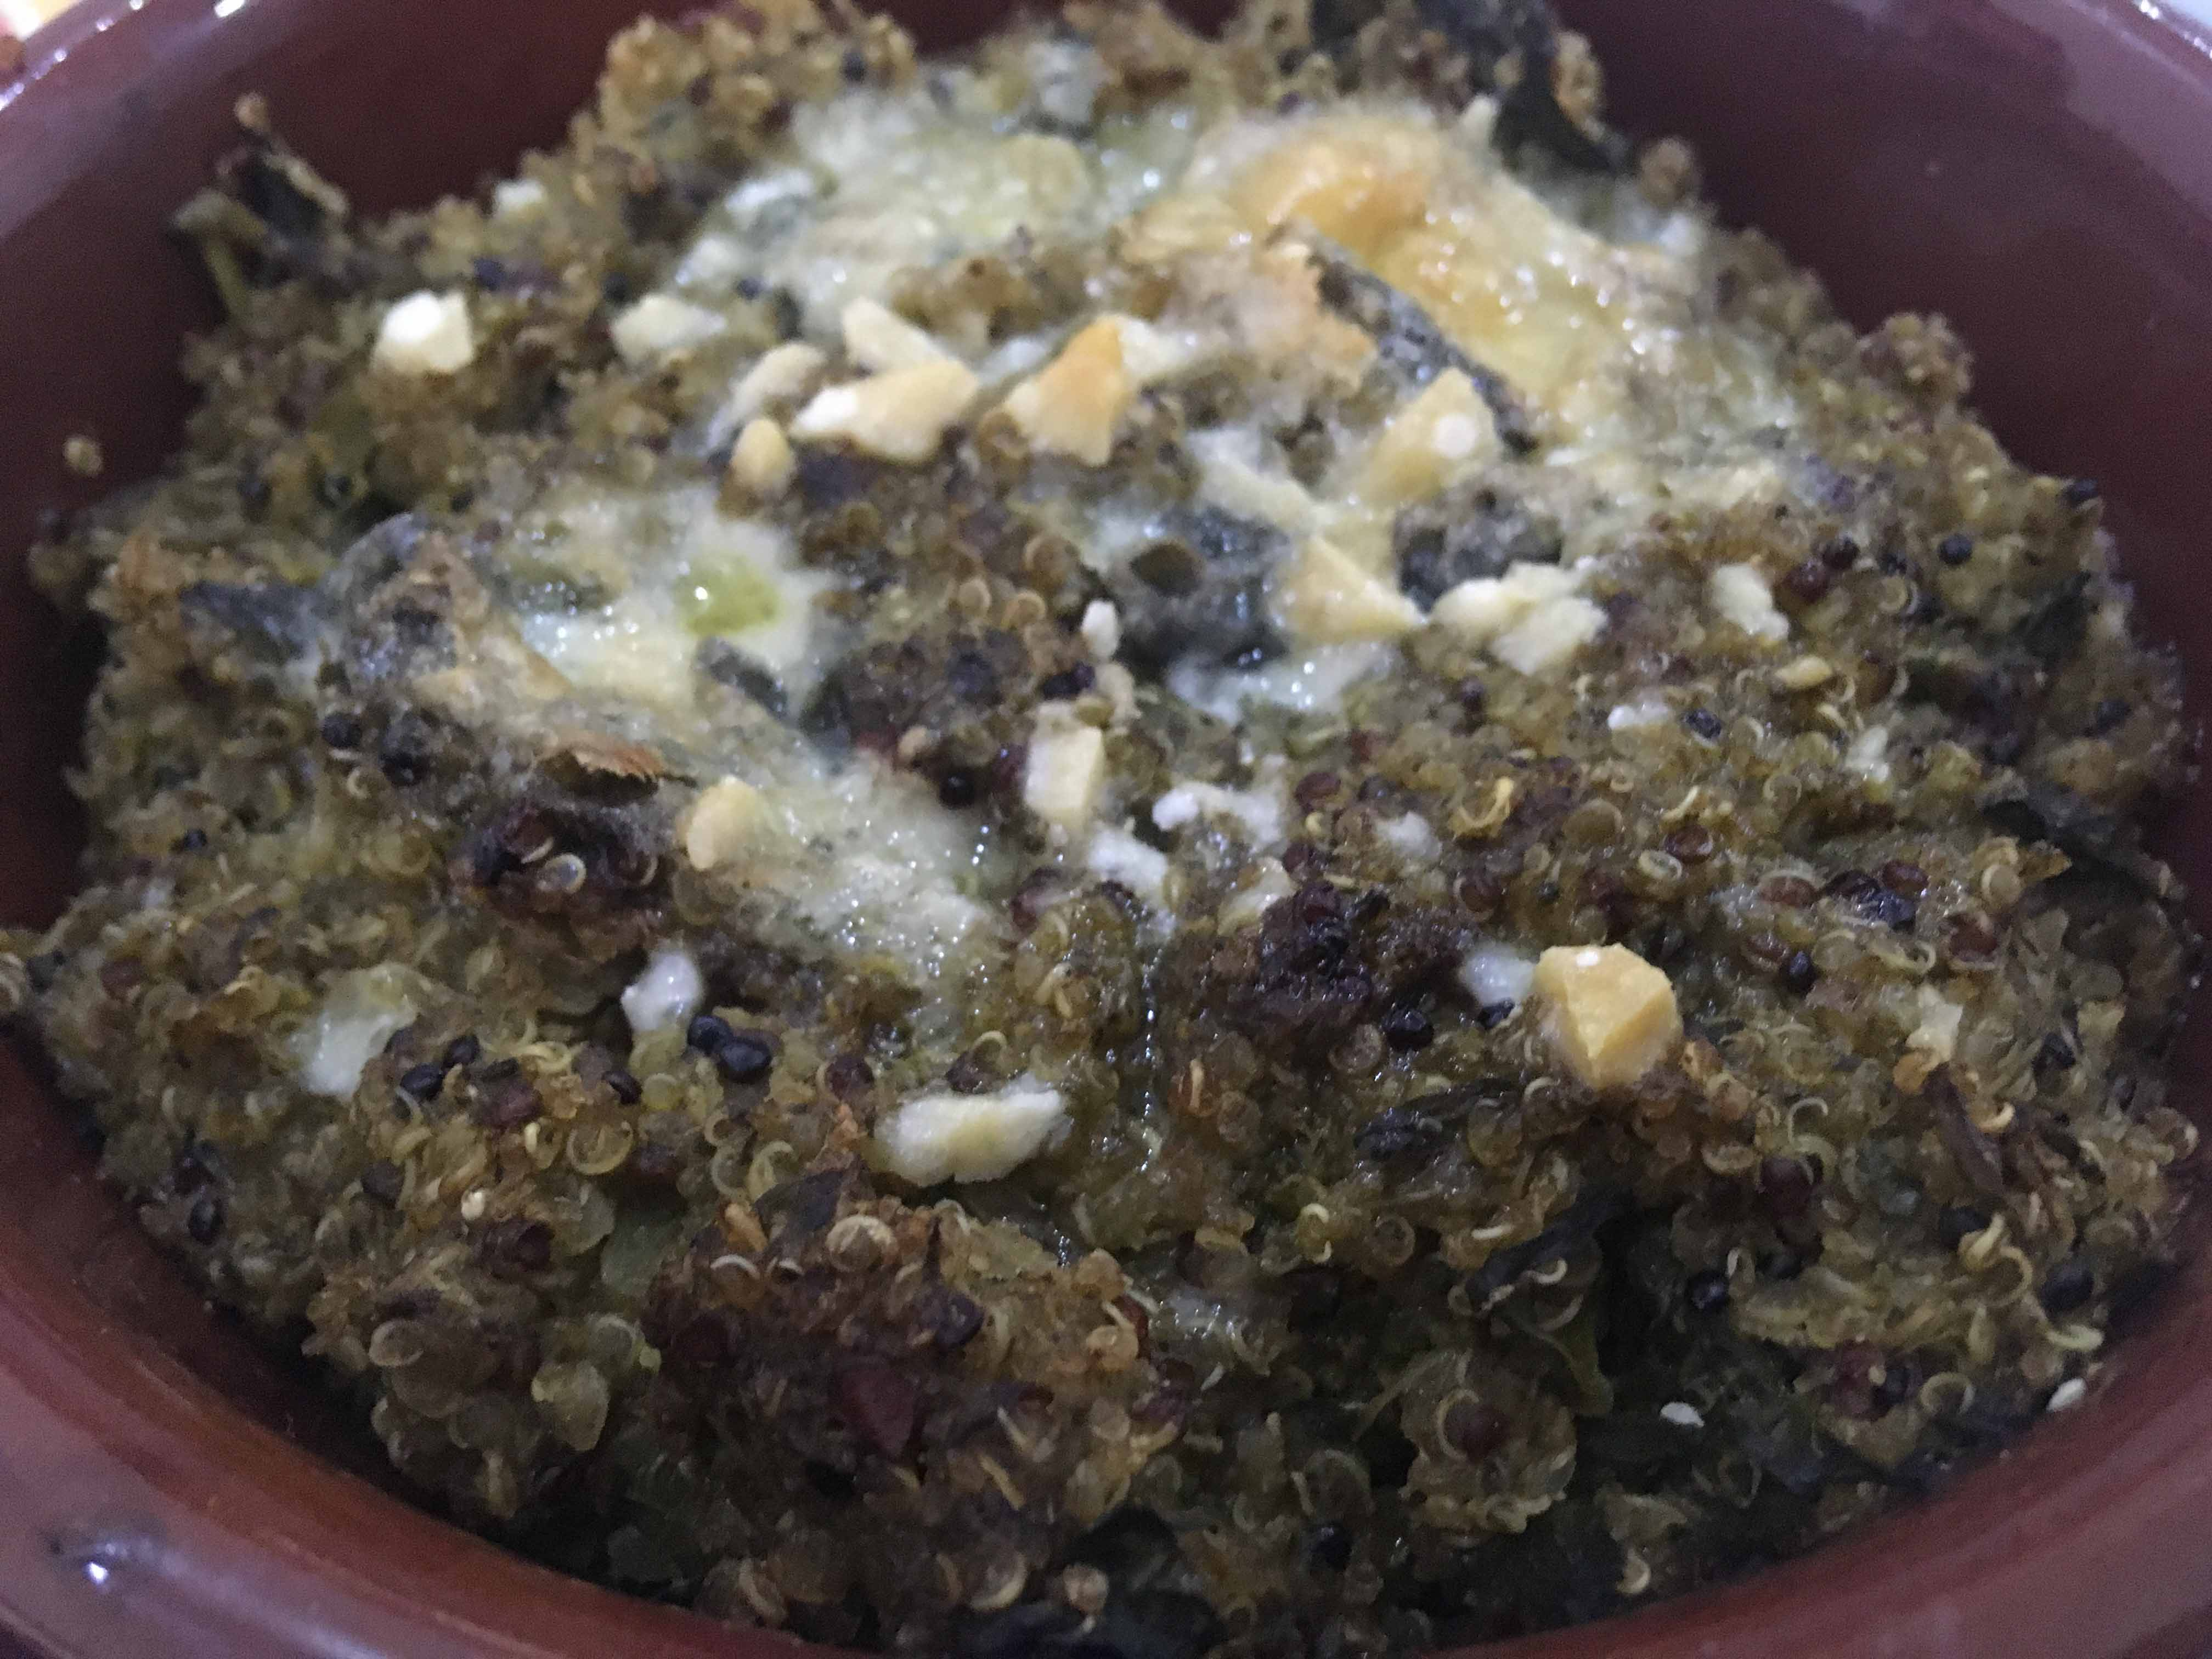 Tortino di quinoa e cime di rapaOriginally Posted on 10 April 2018 and reposted on 13 September 2020